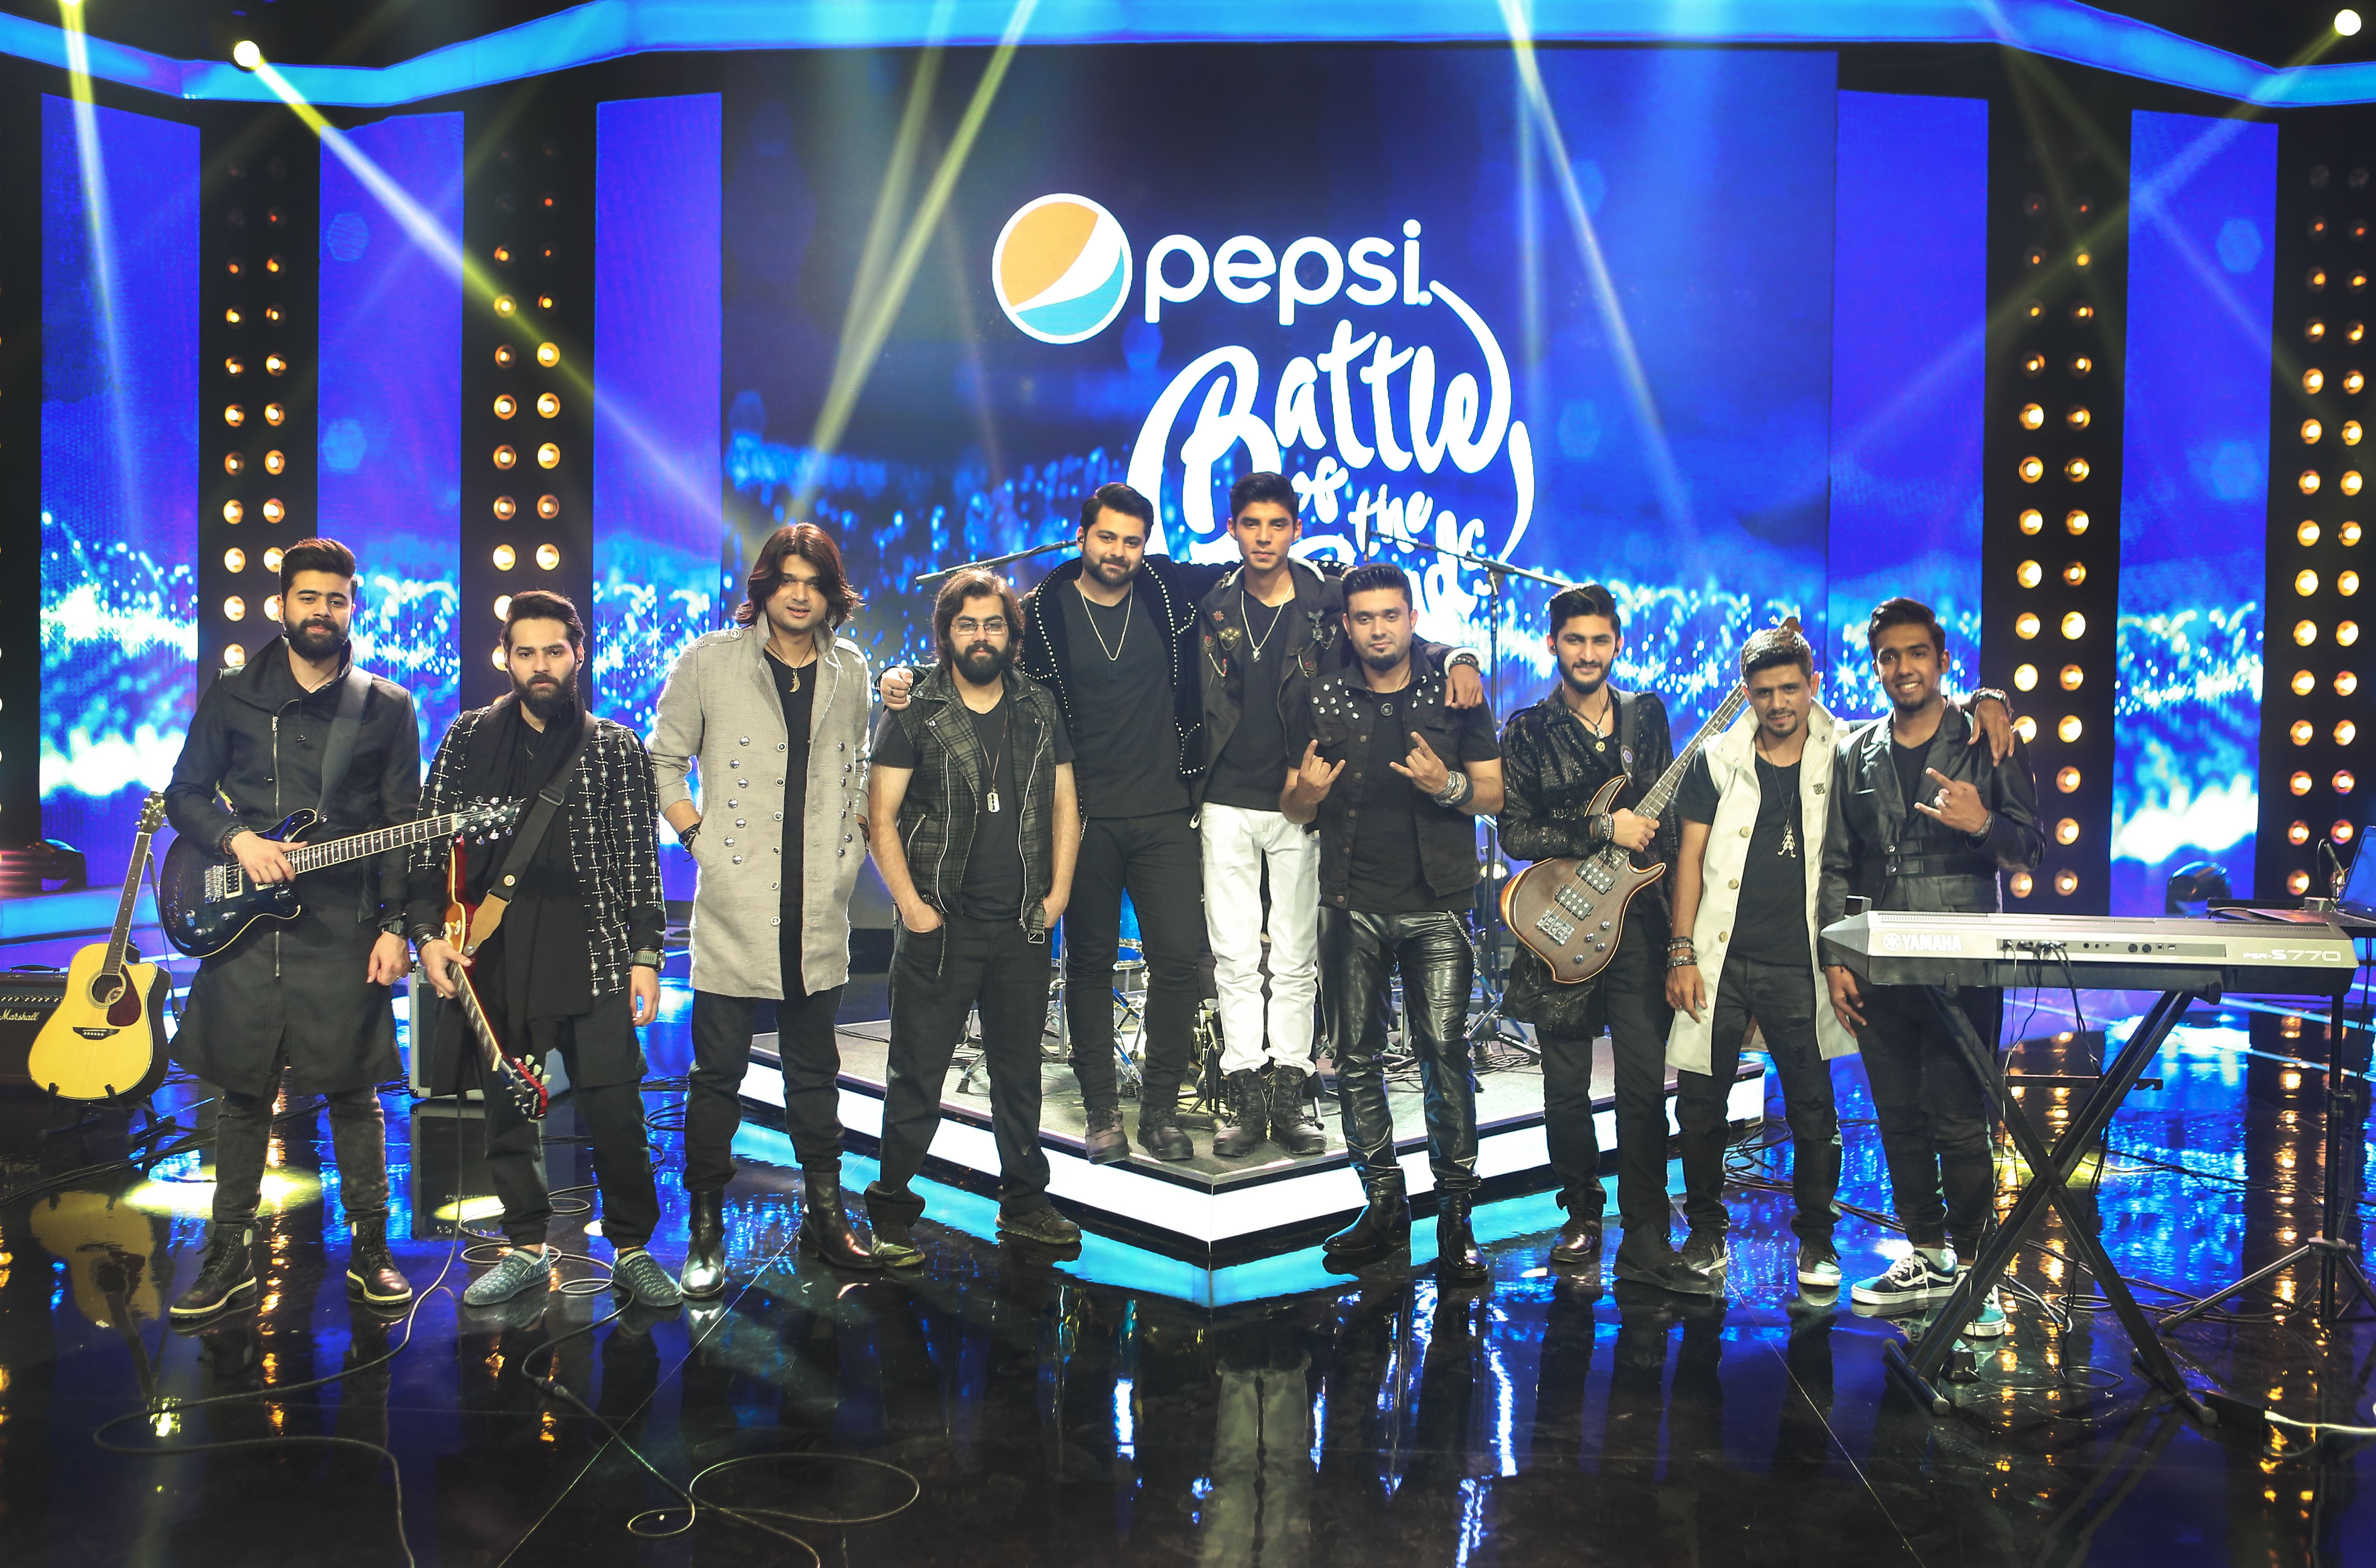 Pepsi Battle Of The Bands: The Final Stage This Week